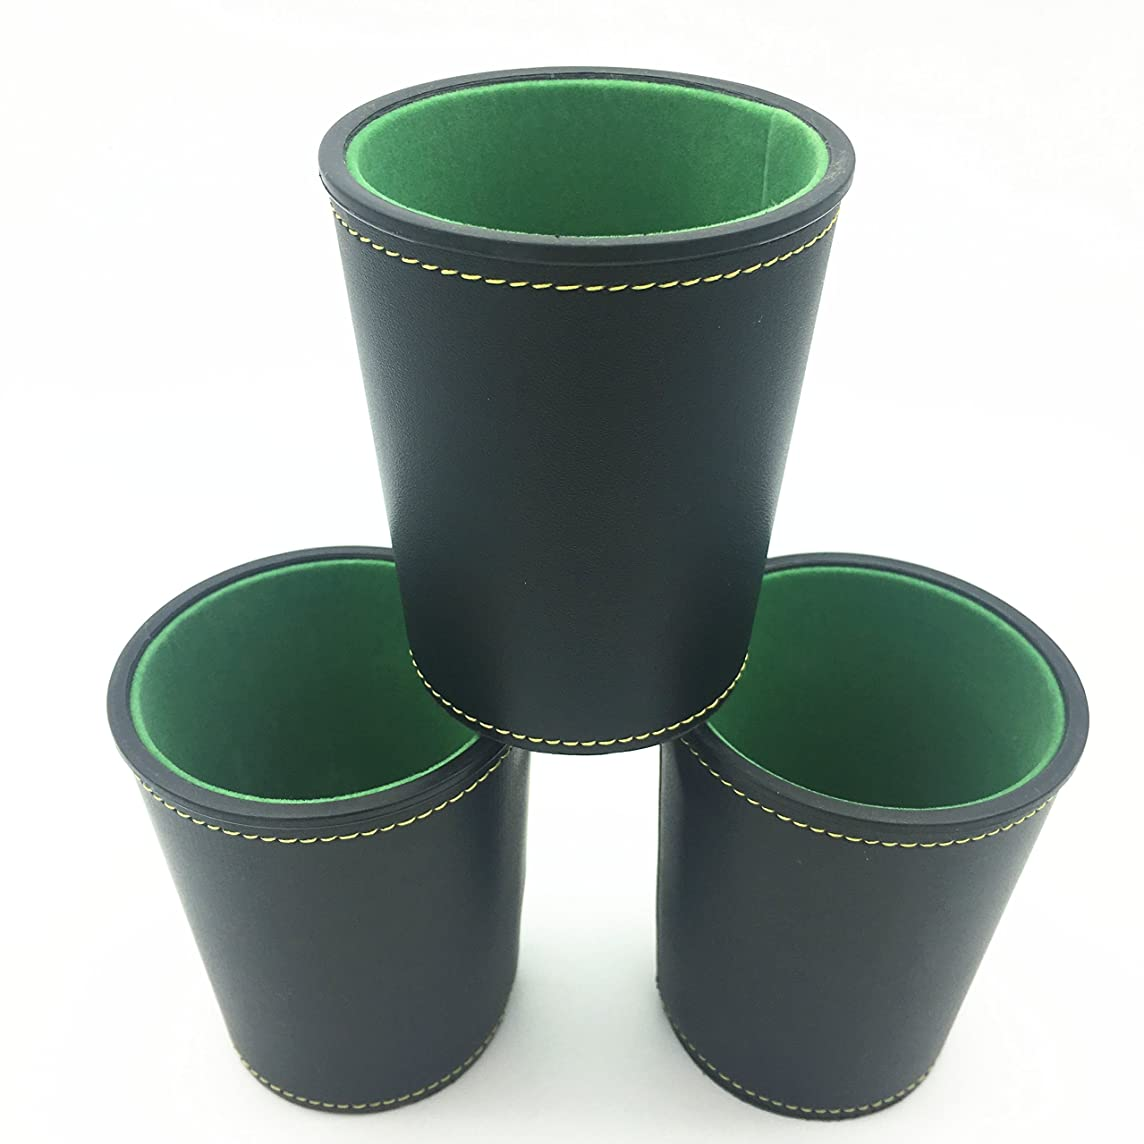 Truewon PU Leather Dice Cup with Green Felt Lining, Mini 3.5